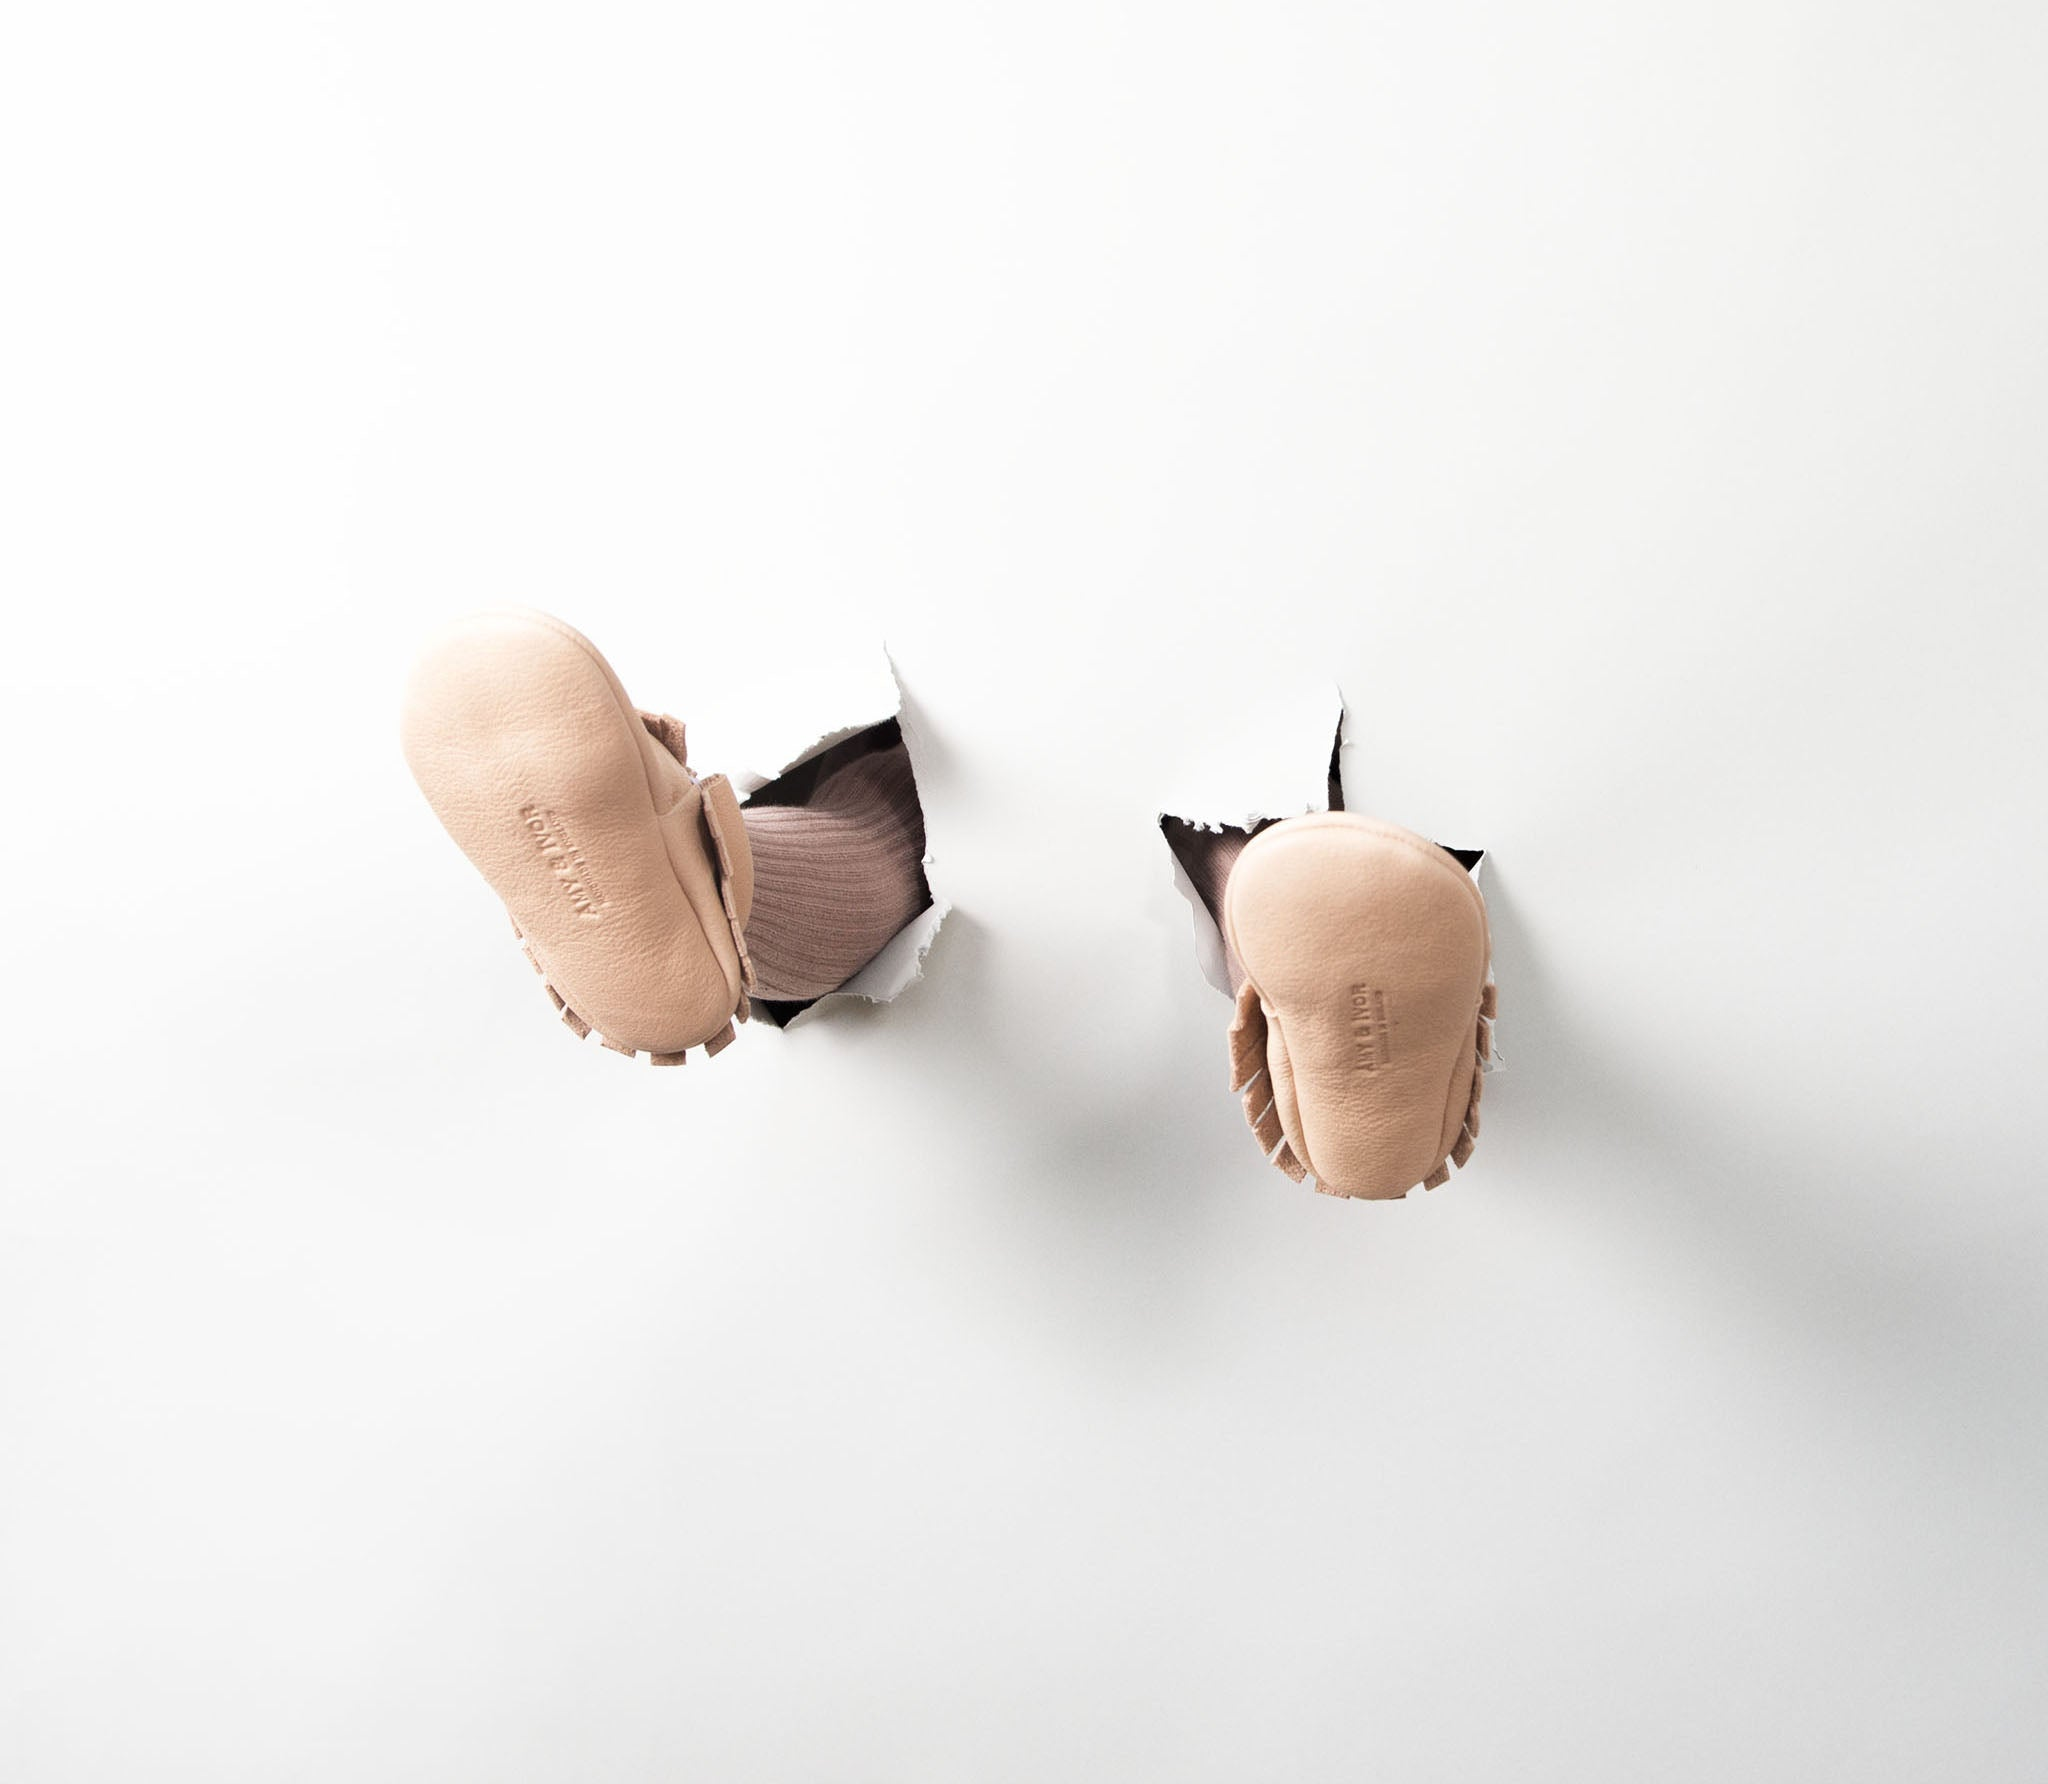 Nude natural leather original baby moccasins by Amy & Ivor. Handmade in England. Photo Alice Hedley Apphia Michael